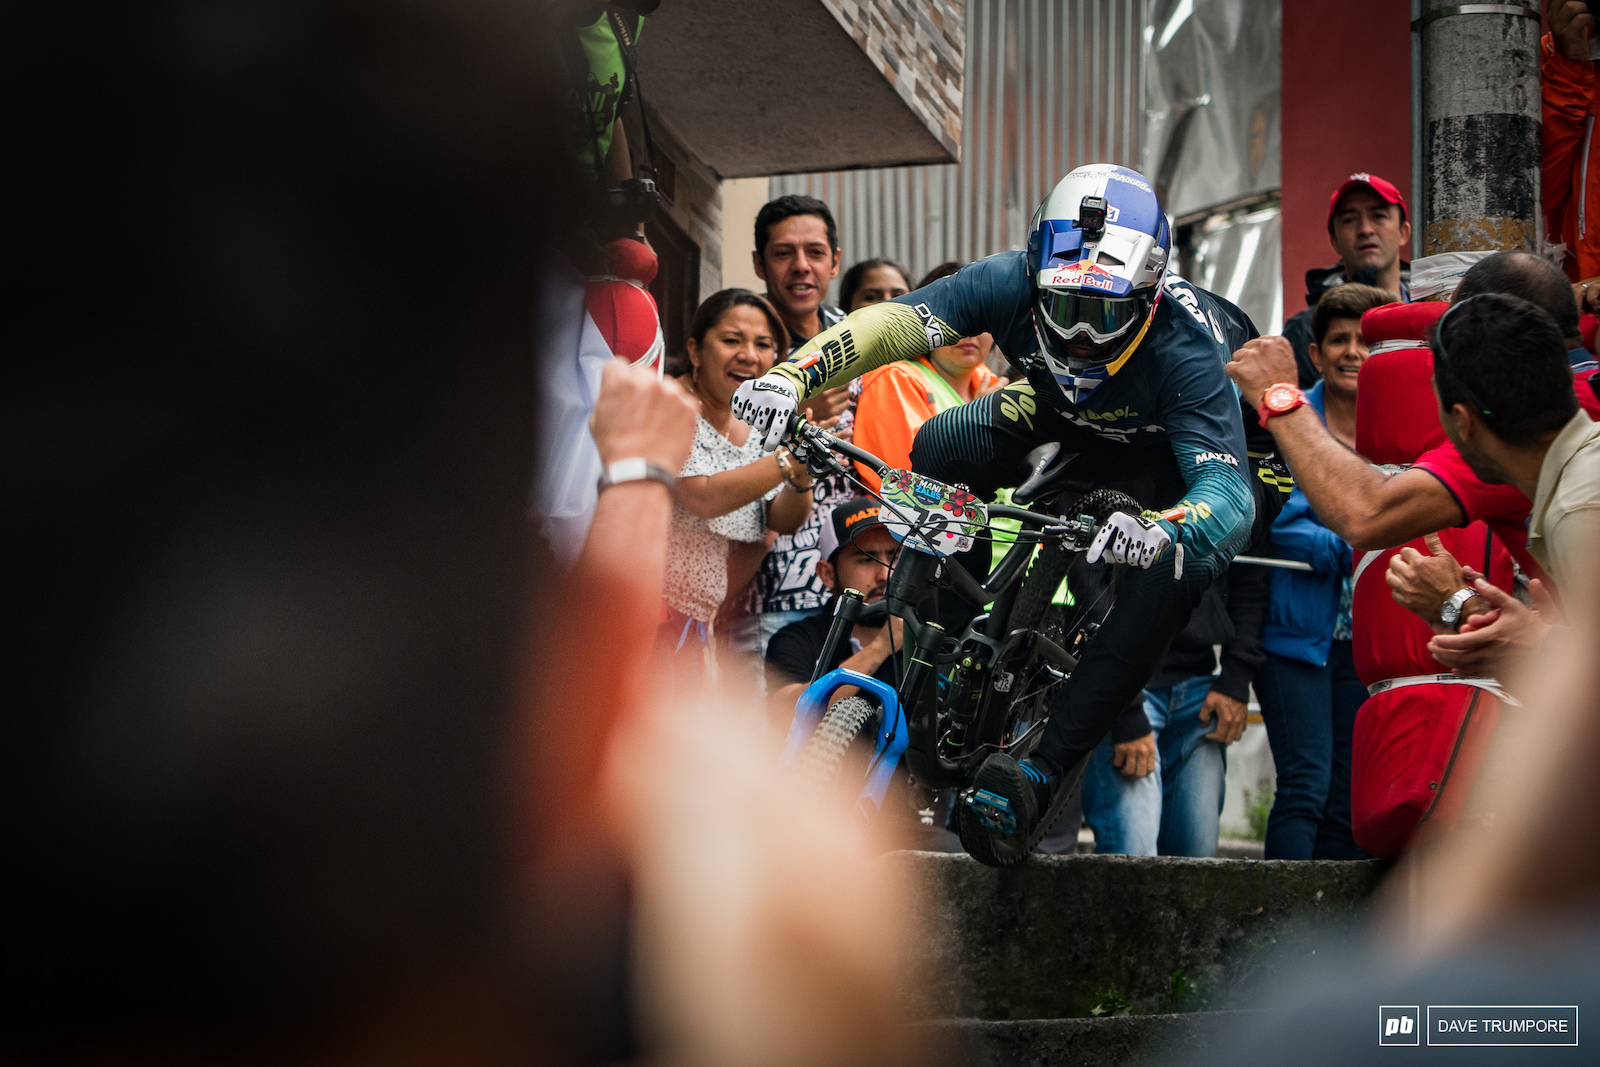 Marcelo Gutierrez proves he is the king of the the street taking the opening stage win in front of a hometown crowd.